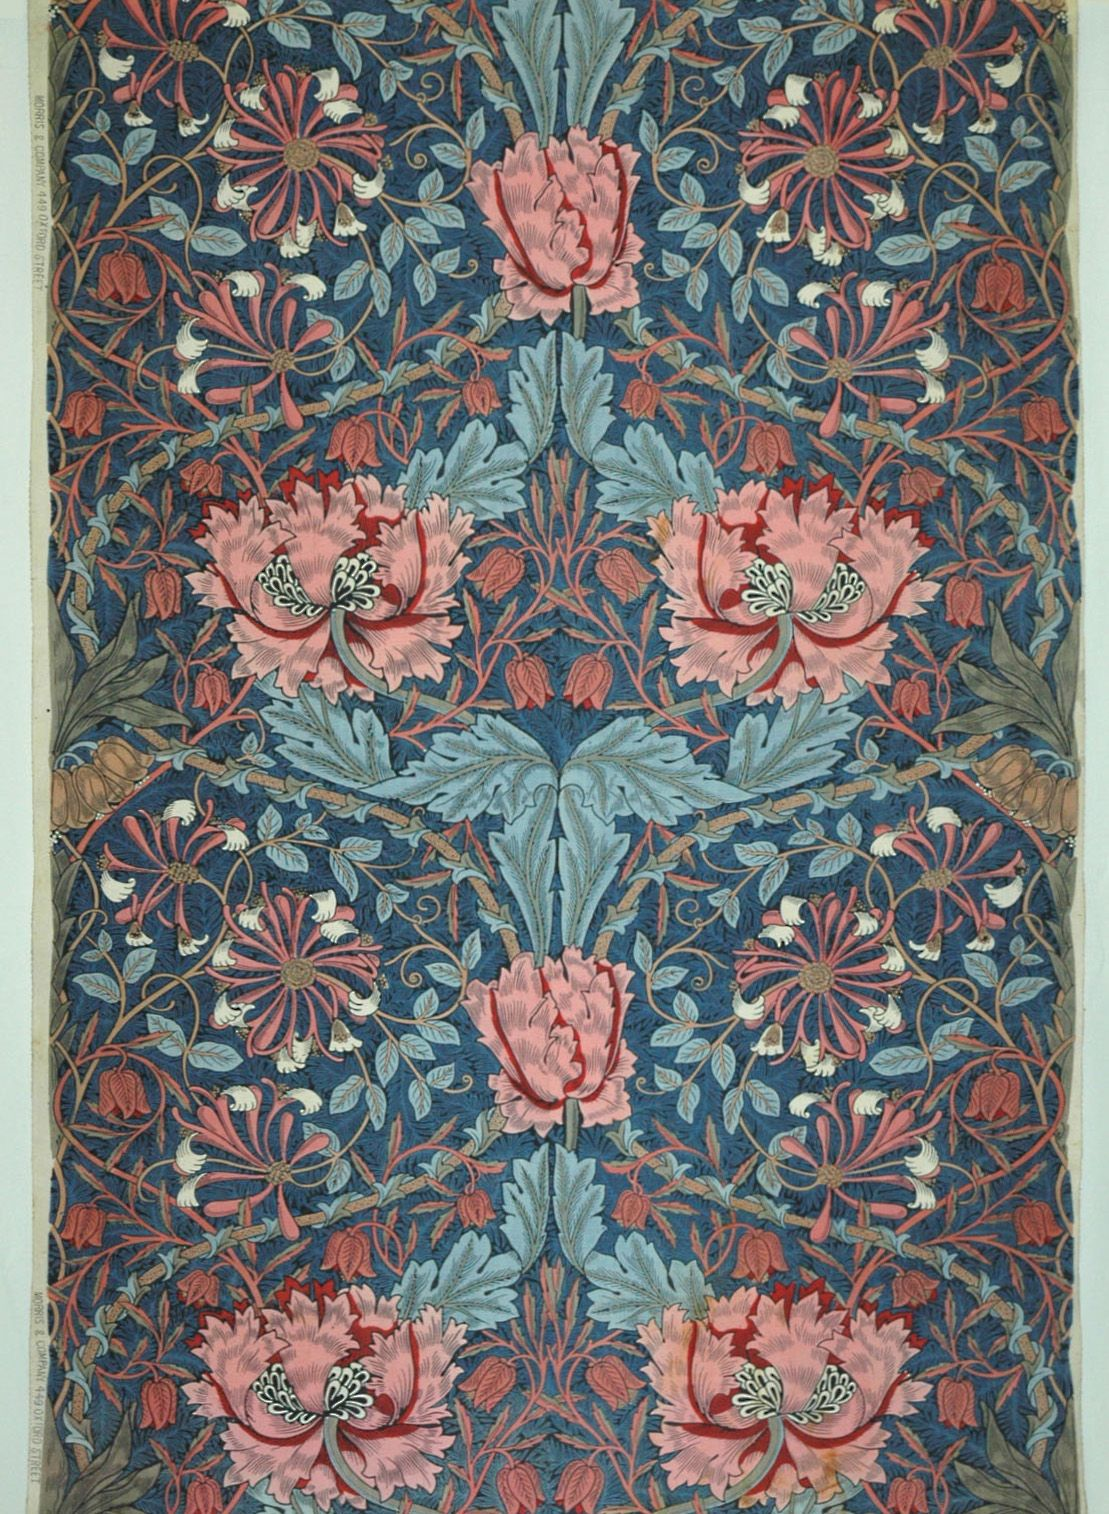 English Textile Design of the Late 19th Century at the MAK